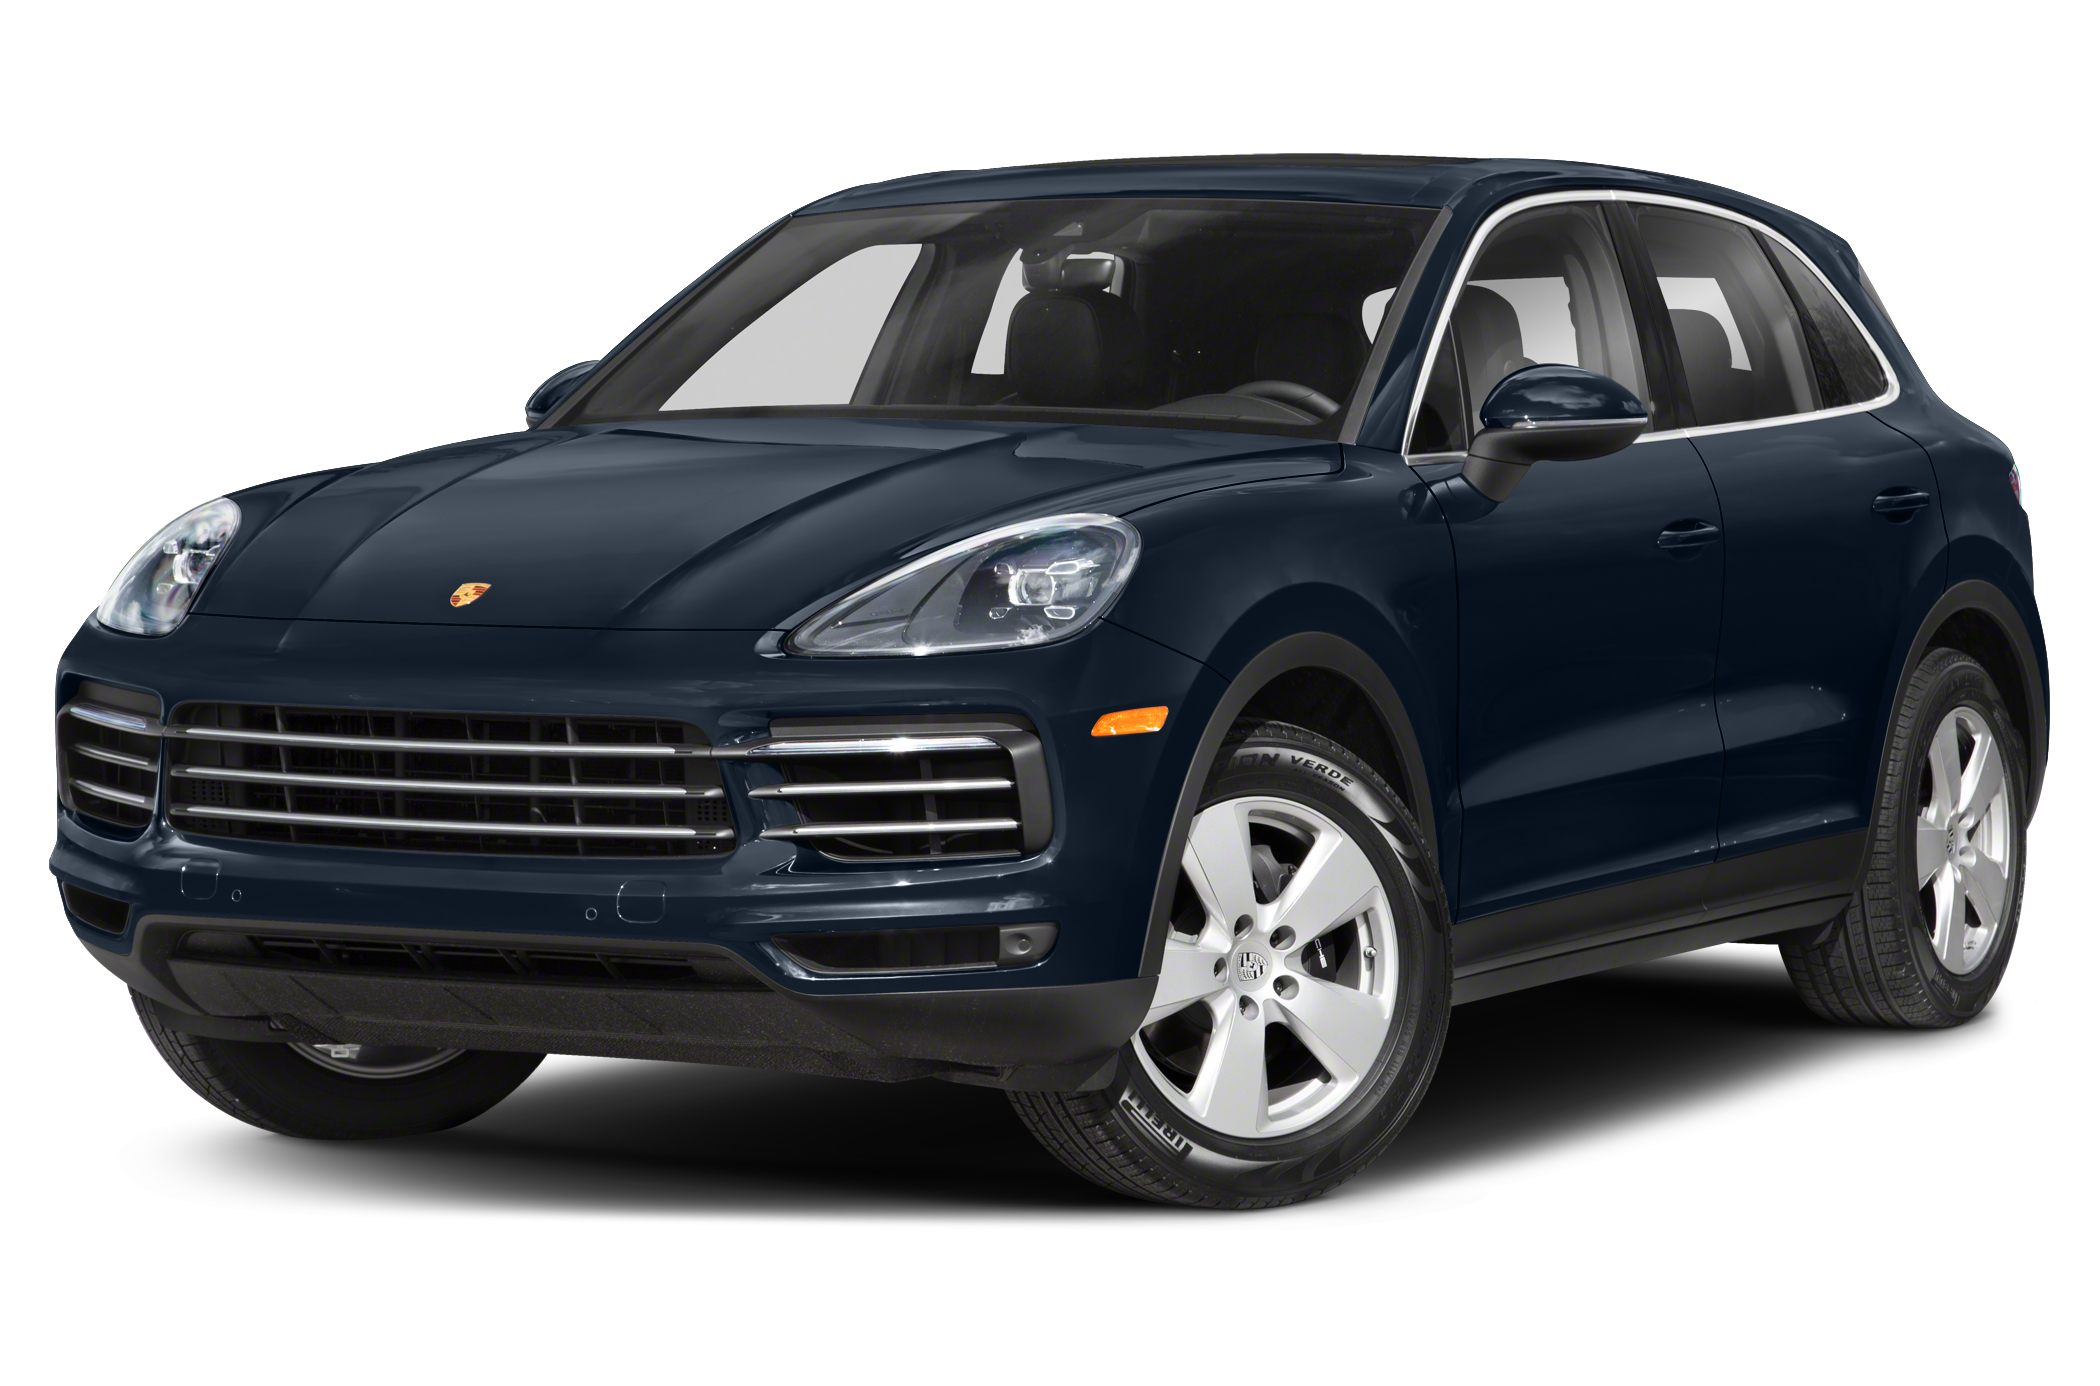 2019 Porsche Cayenne Pricing And Specs